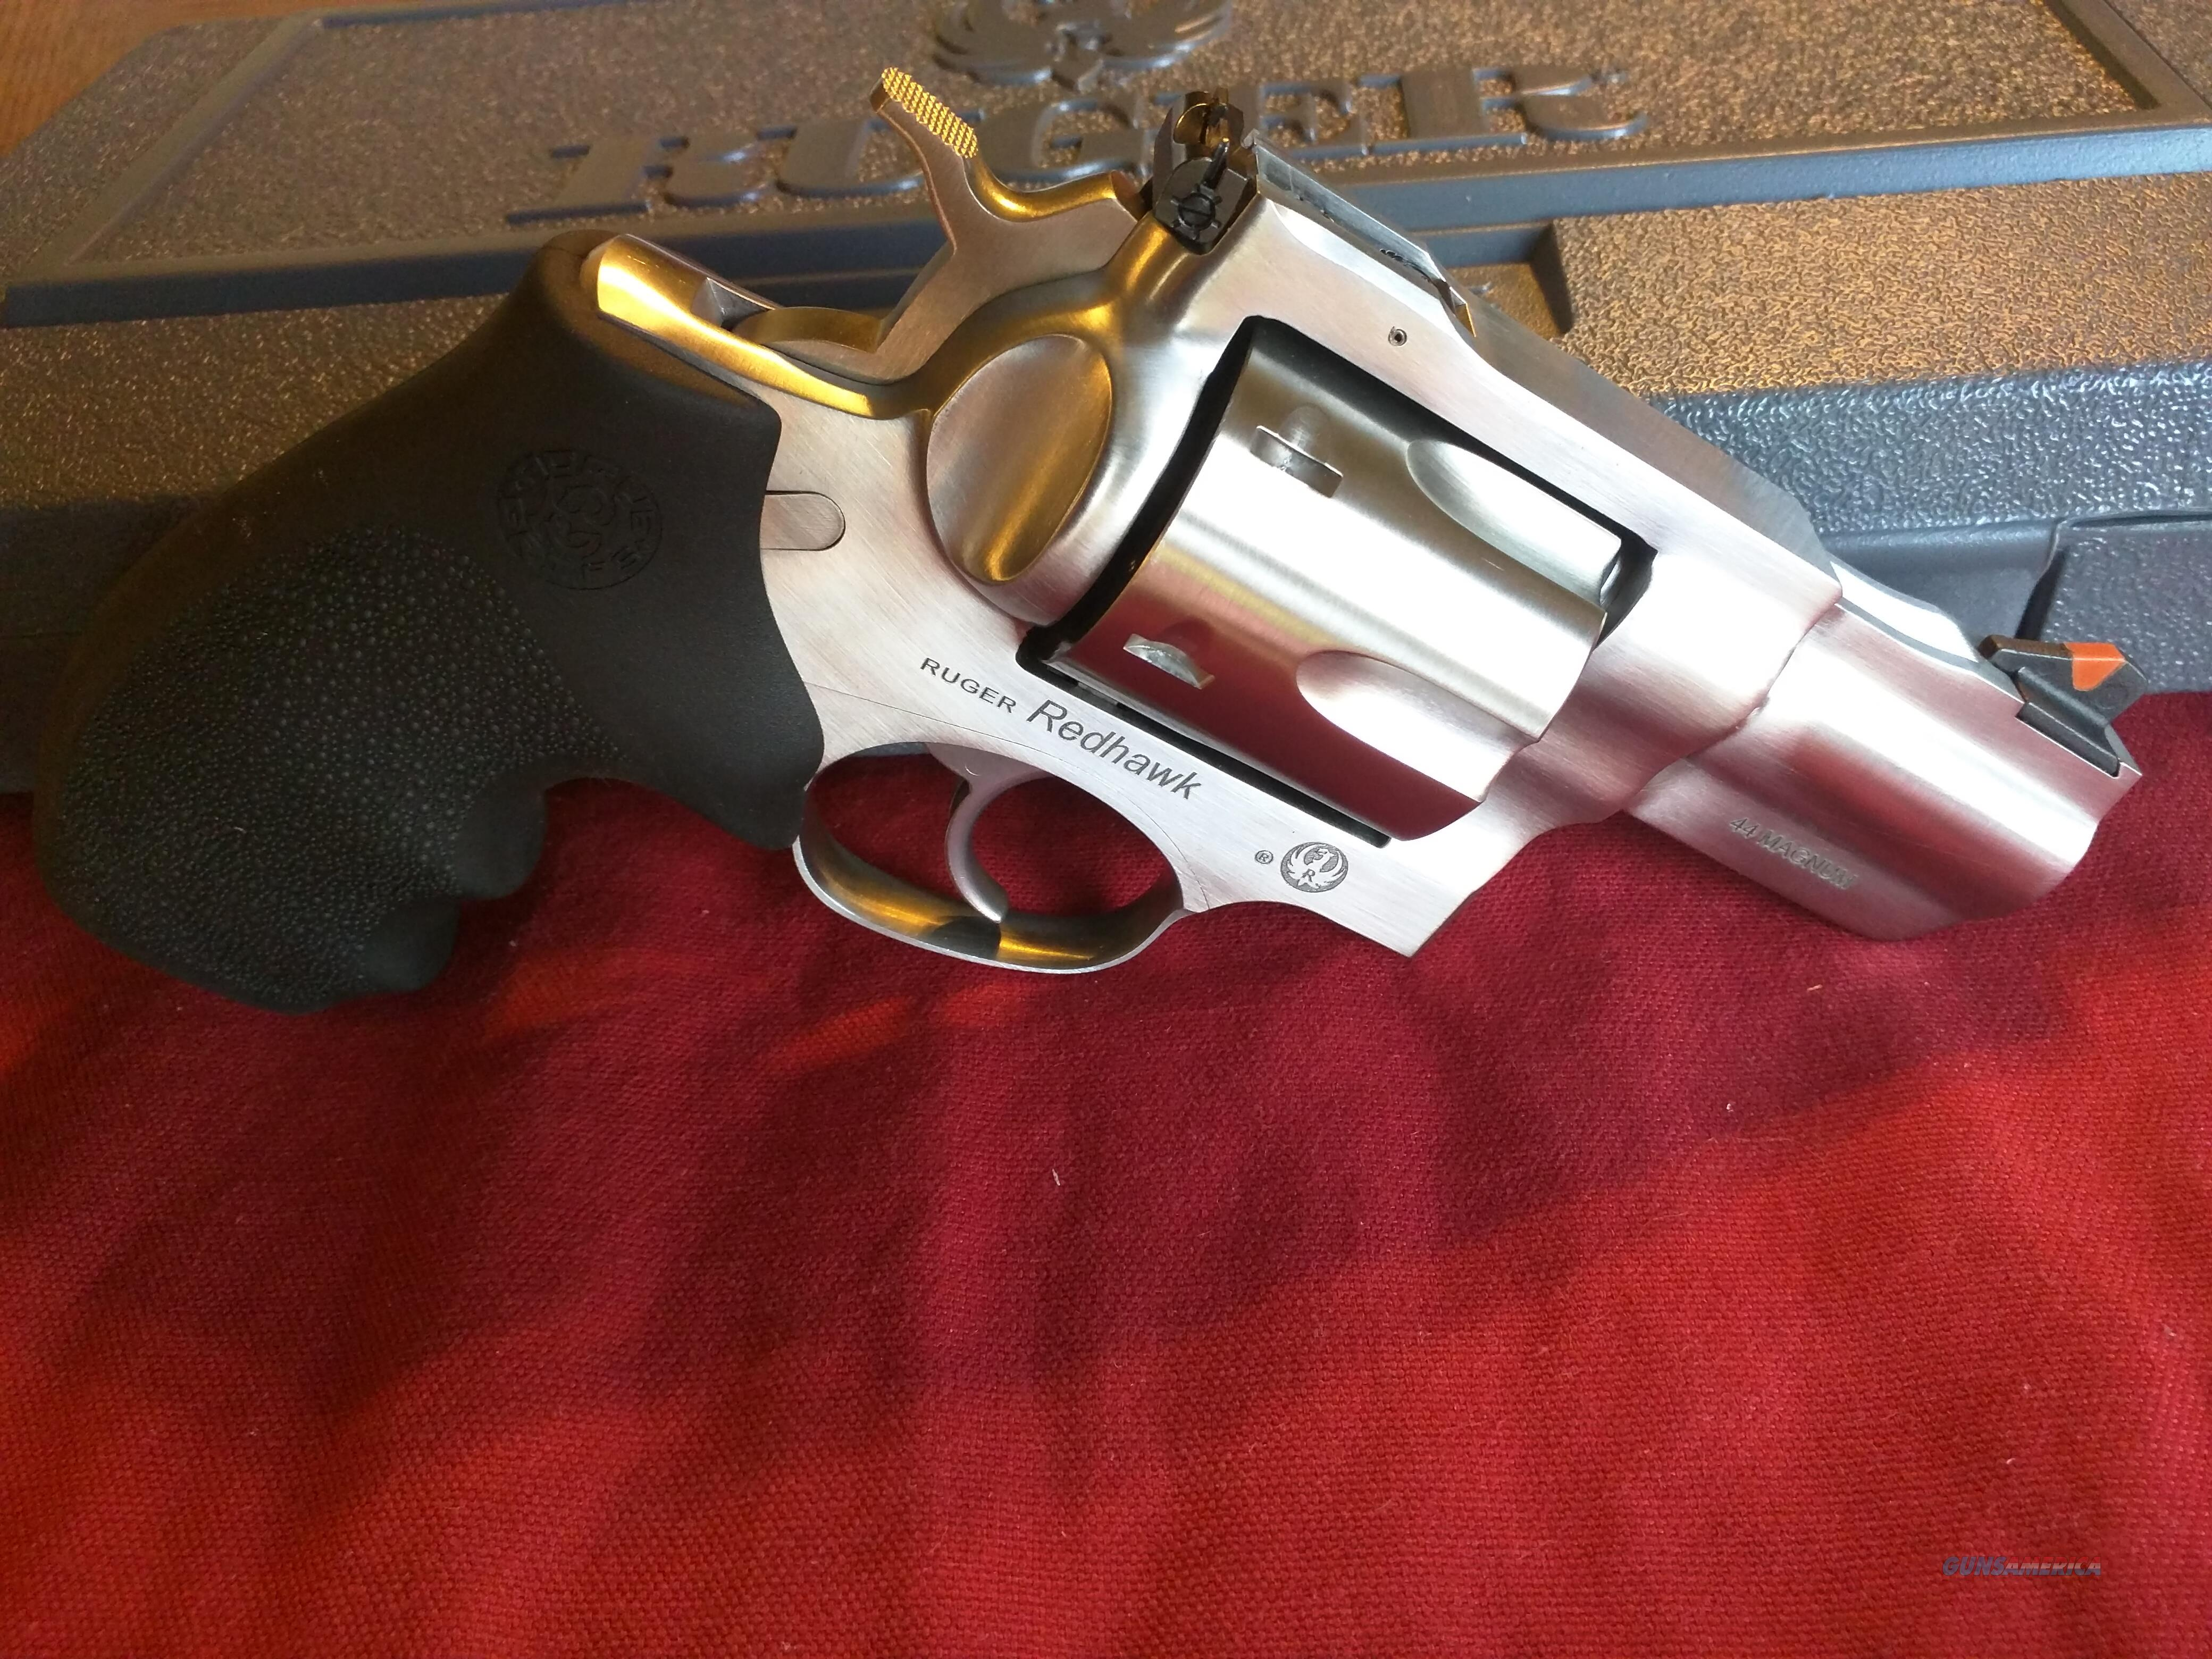 """Ruger Redhawk Kodiak .44 Mag/.44 Special, All Stainless, 2 3/4"""" Barrel, 6 shot, with Hogue Rubber grips and Wood Grips, FREE Layaway  Guns > Pistols > Ruger Double Action Revolver > Redhawk Type"""